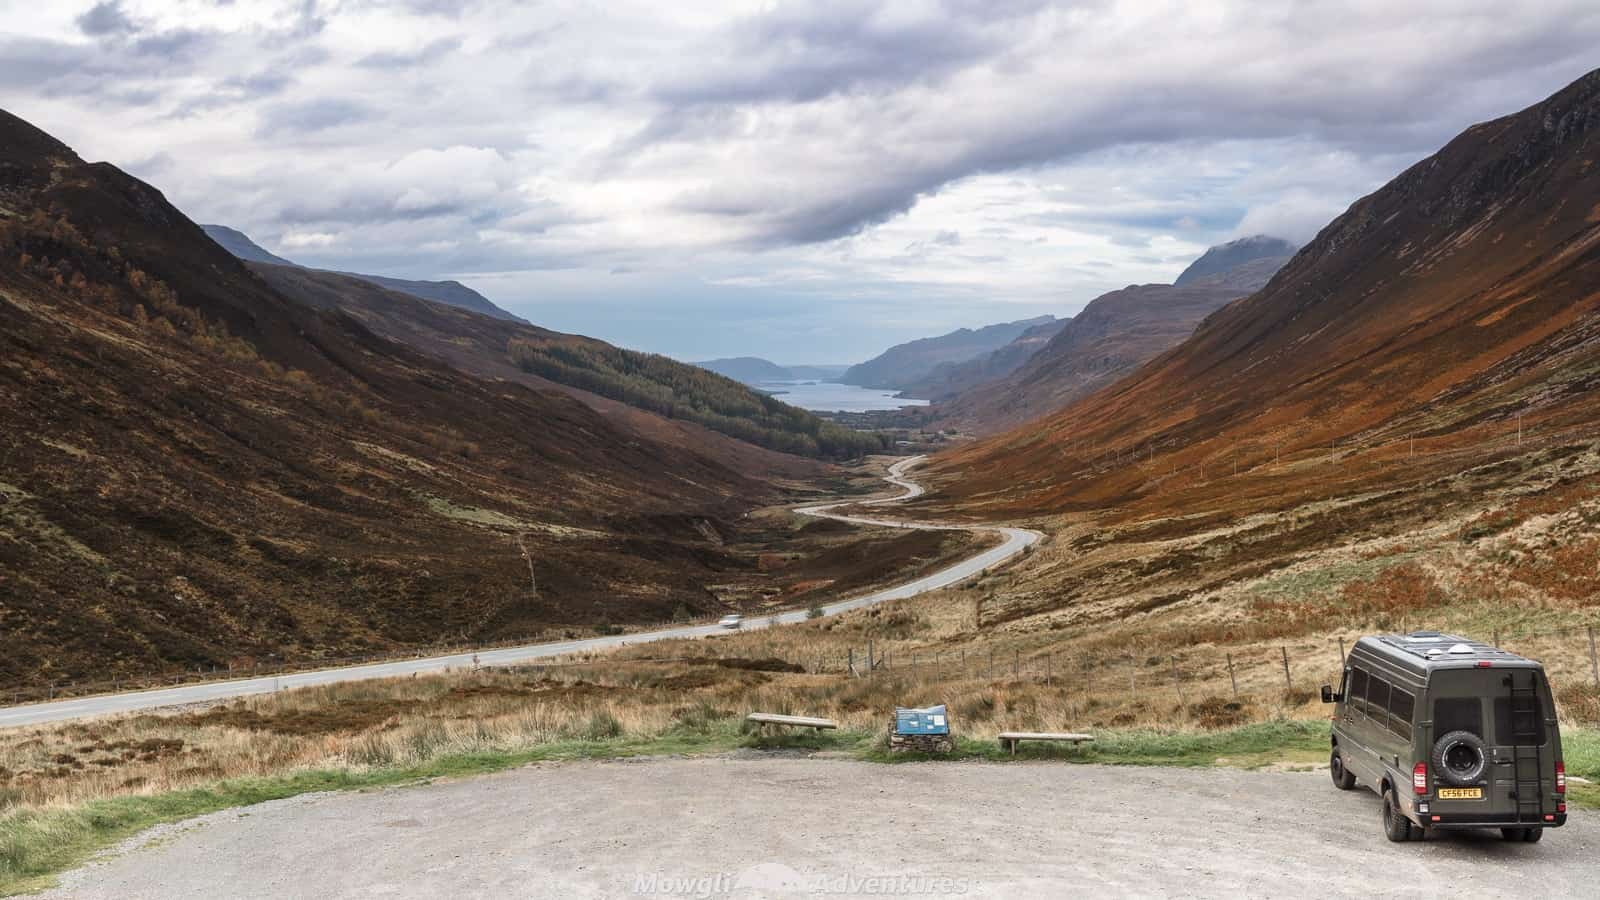 A guide to wild camping for motorhomes and camper vans